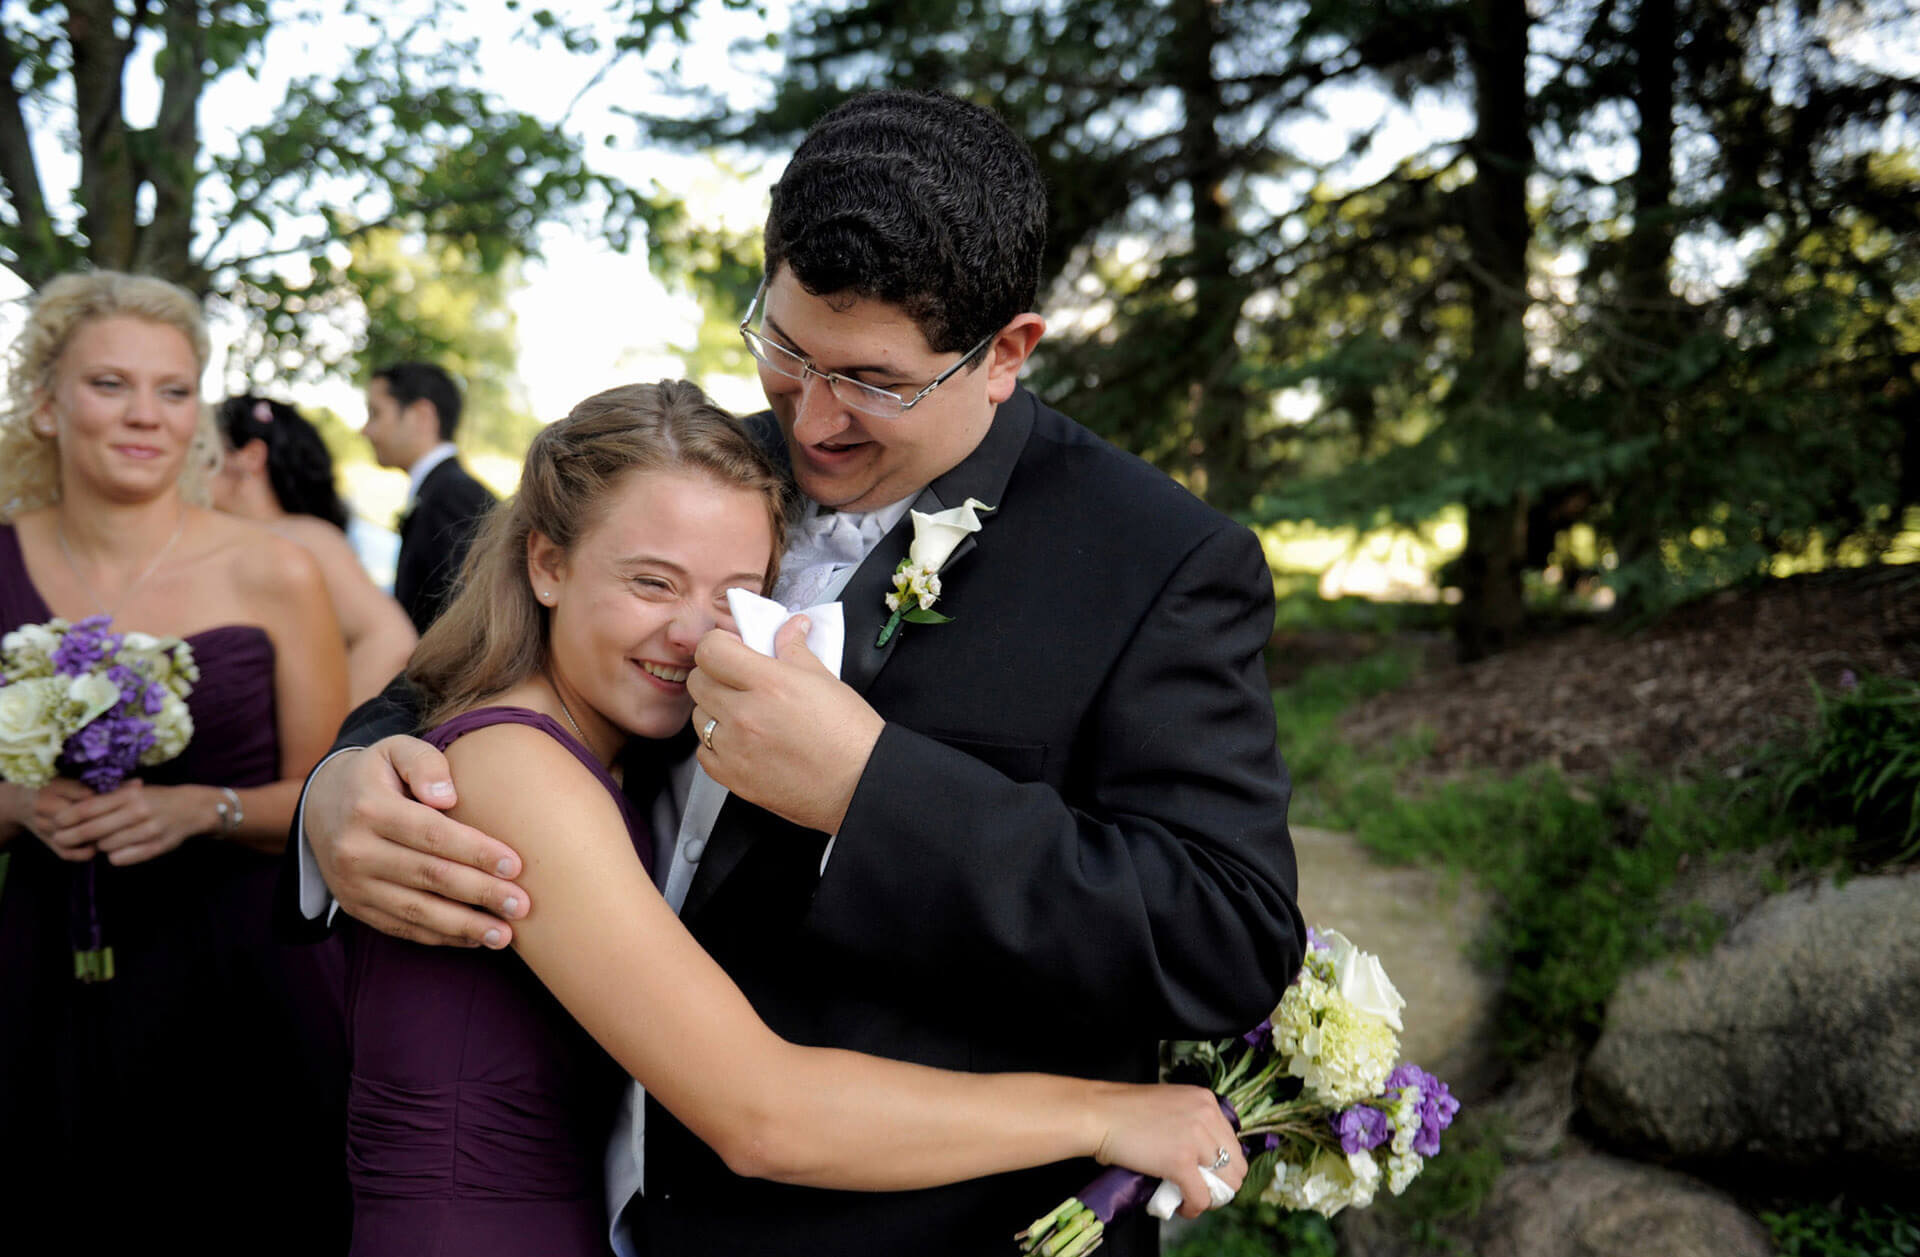 A Rochester, Michigan groom wipes away his new sister in law's tears after his wedding which capitalized on one of Michigan's best wedding photojournalists.